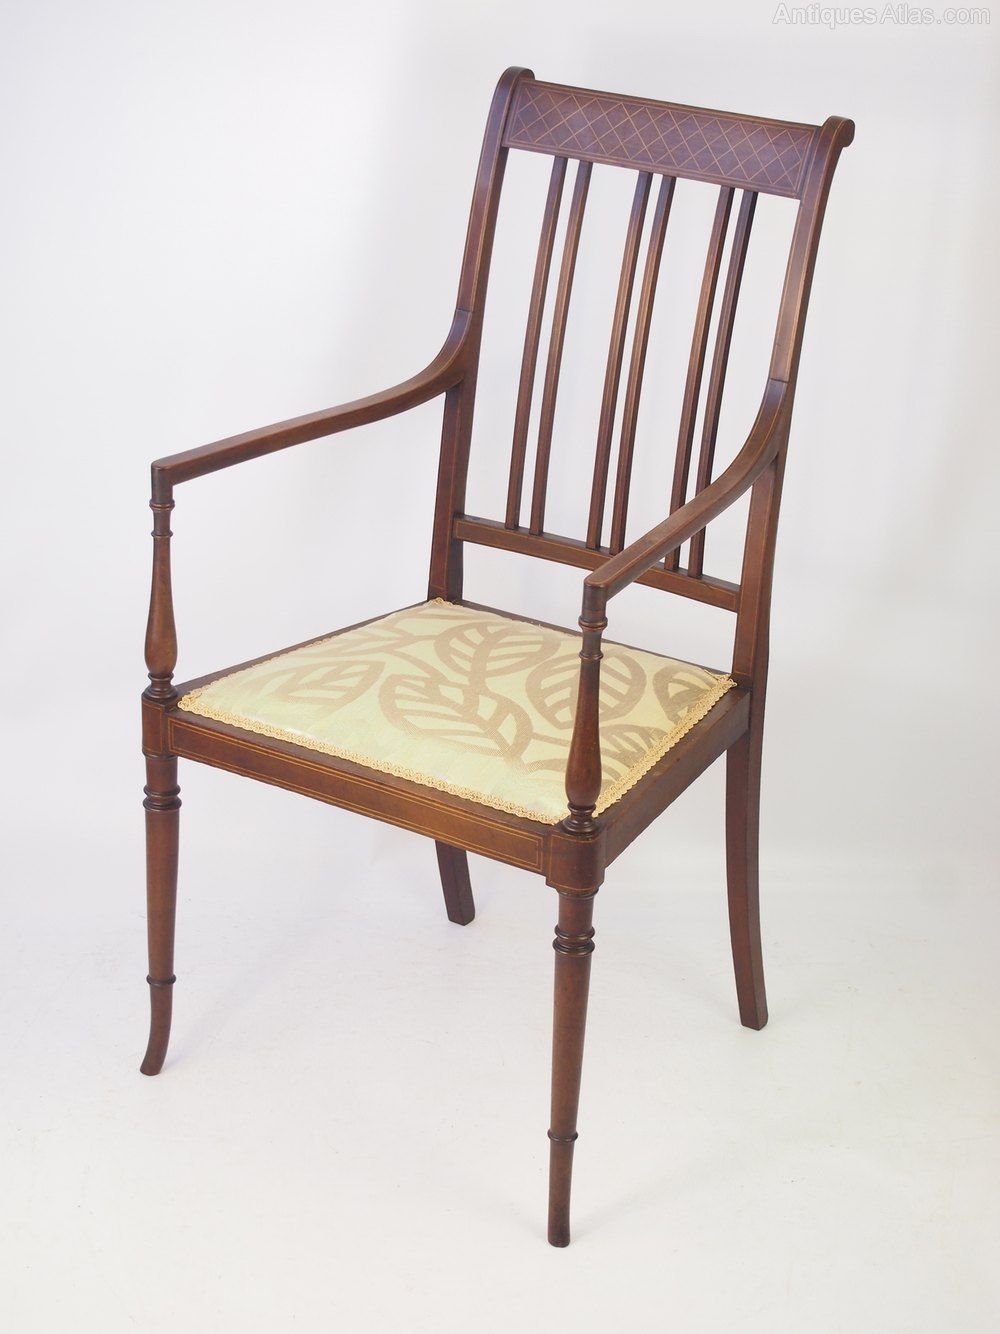 Edwardian Mahogany Inlaid Open Armchair Antiques Atlas